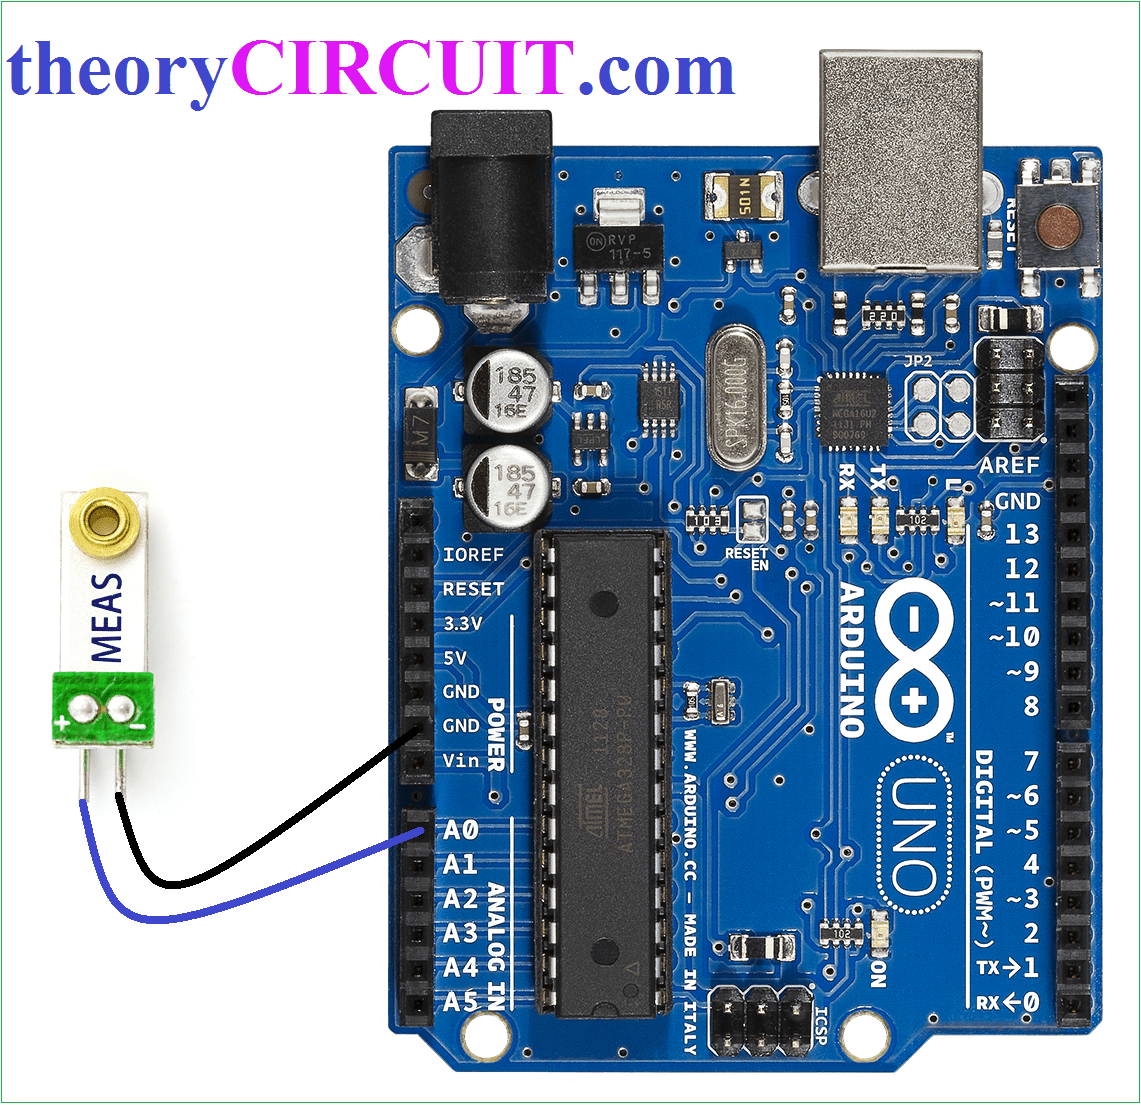 Piezo Vibration Monitoring Sensor With Arduino 232 Serial Port Circuit Diagram Amplifiercircuit Hookup